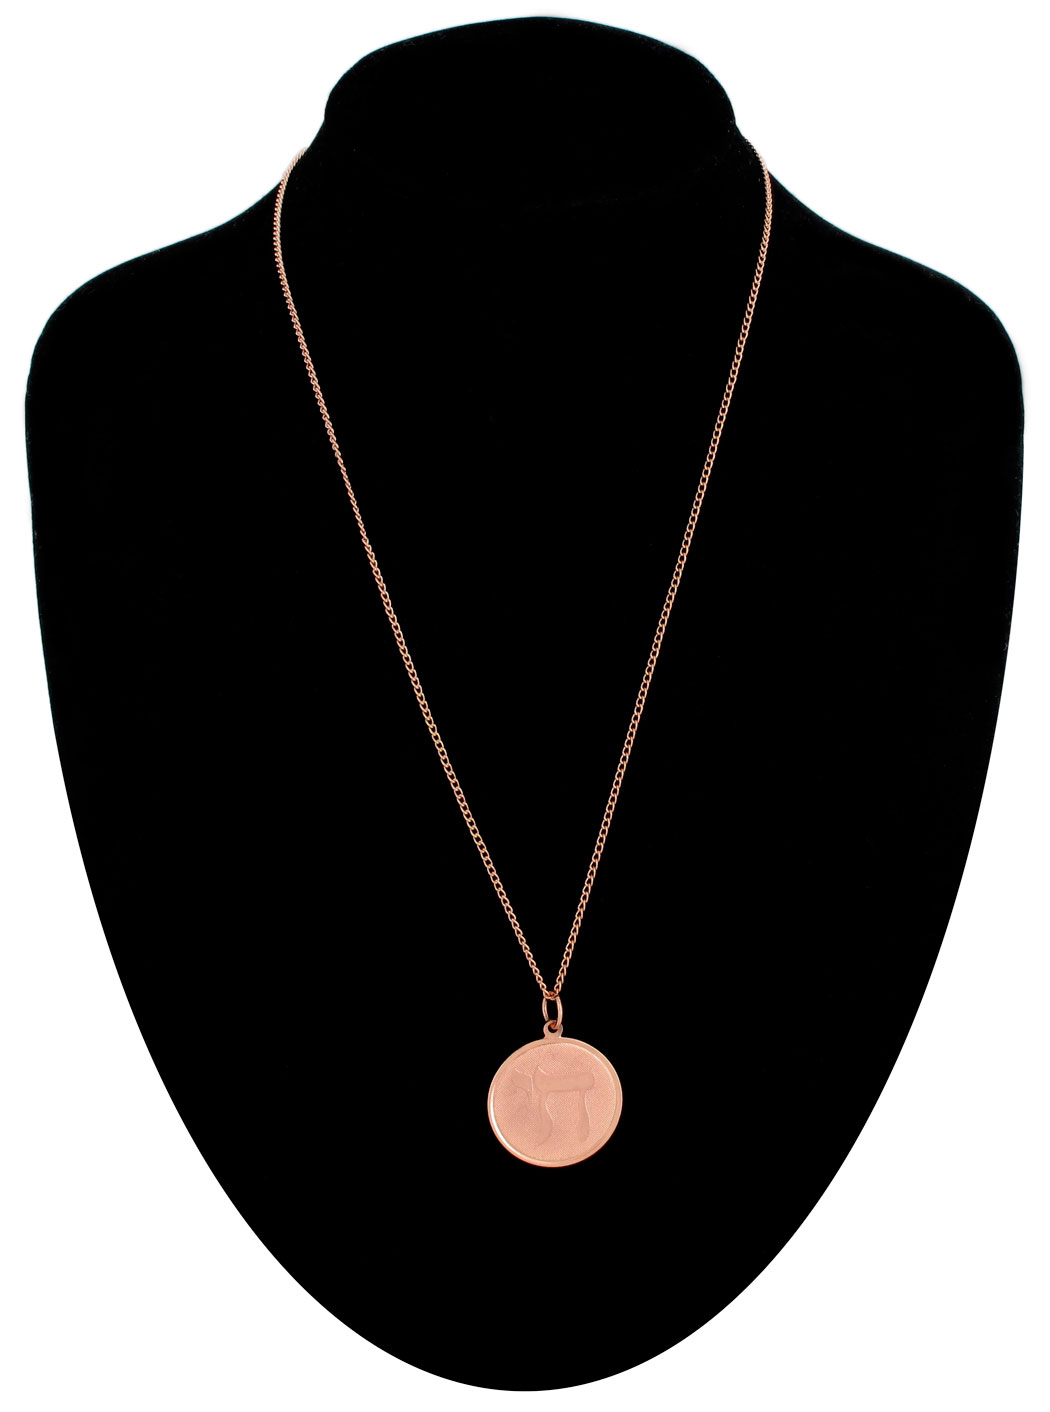 KY & Co USA Made Pendant Necklace Hebrew Chai To Life Rose Gold Tone Coin